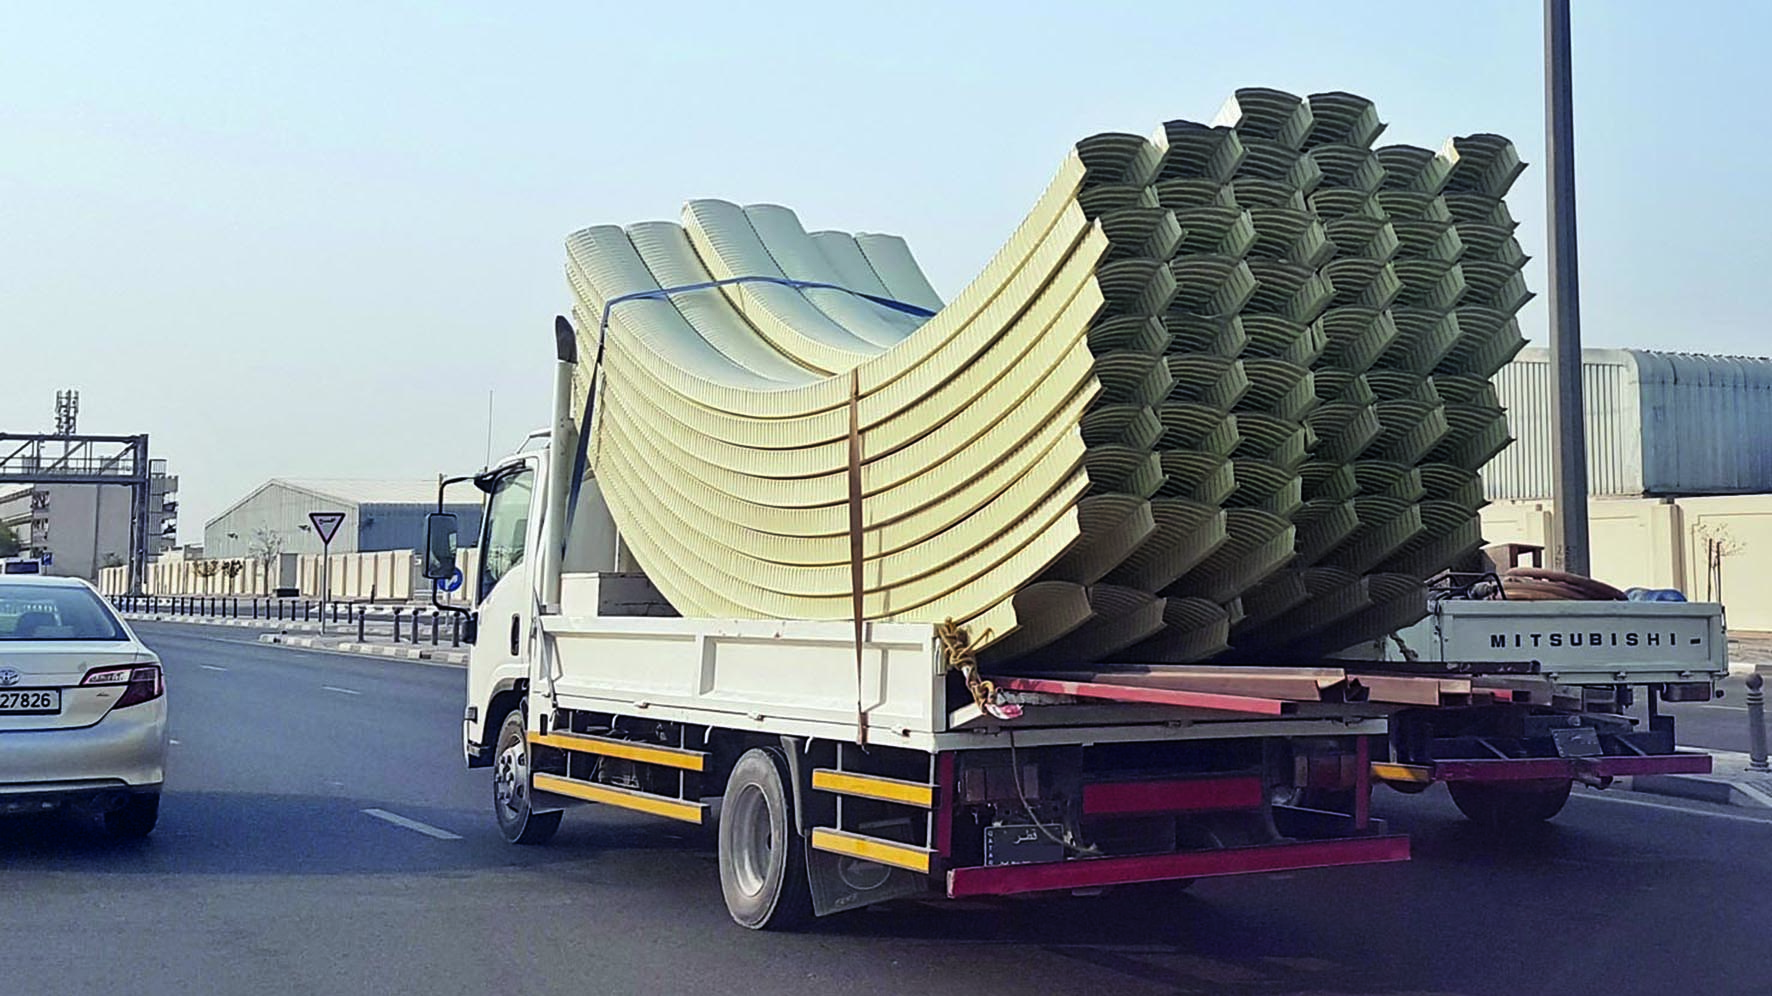 Transport vehicles not complying with legal dimensions of load